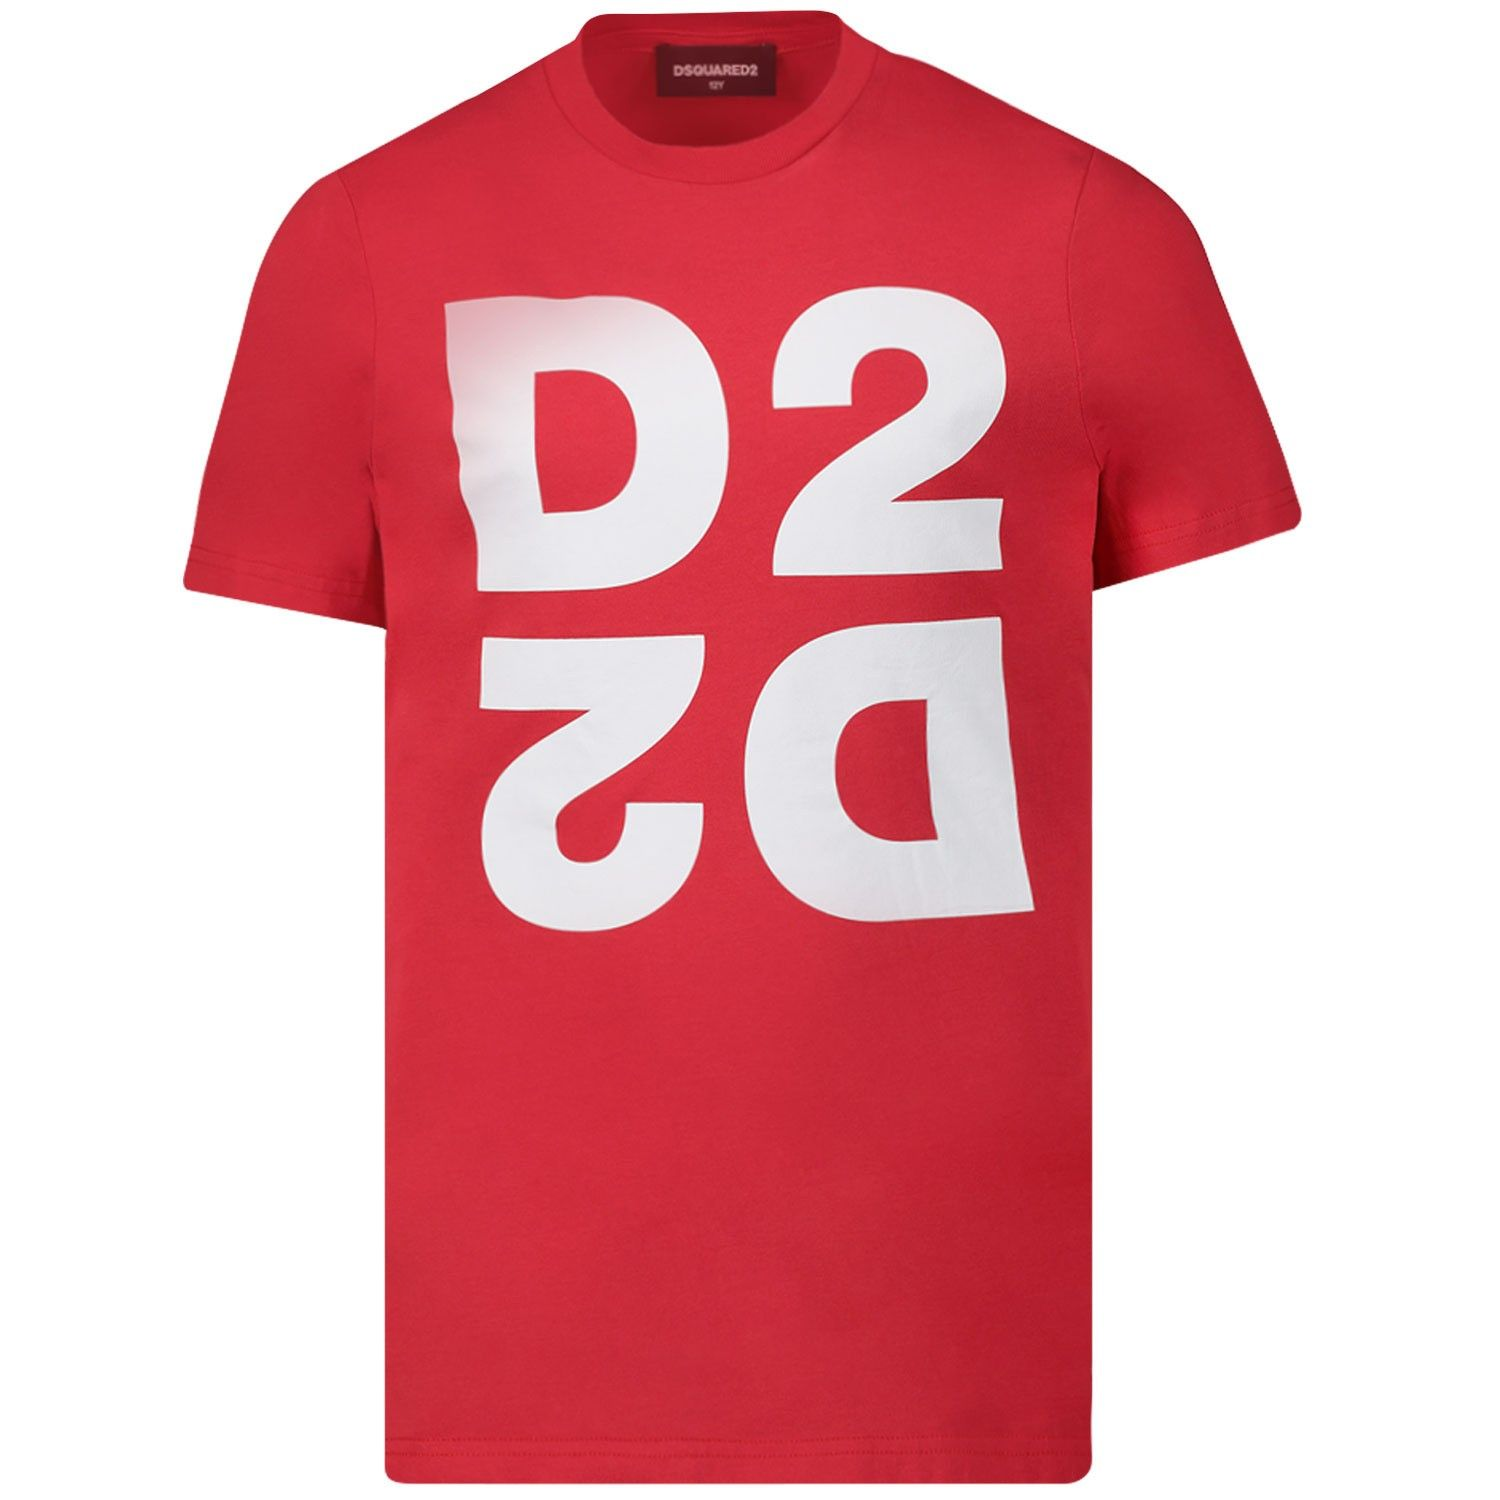 Picture of Dsquared2 DQ03WI kids t-shirt red